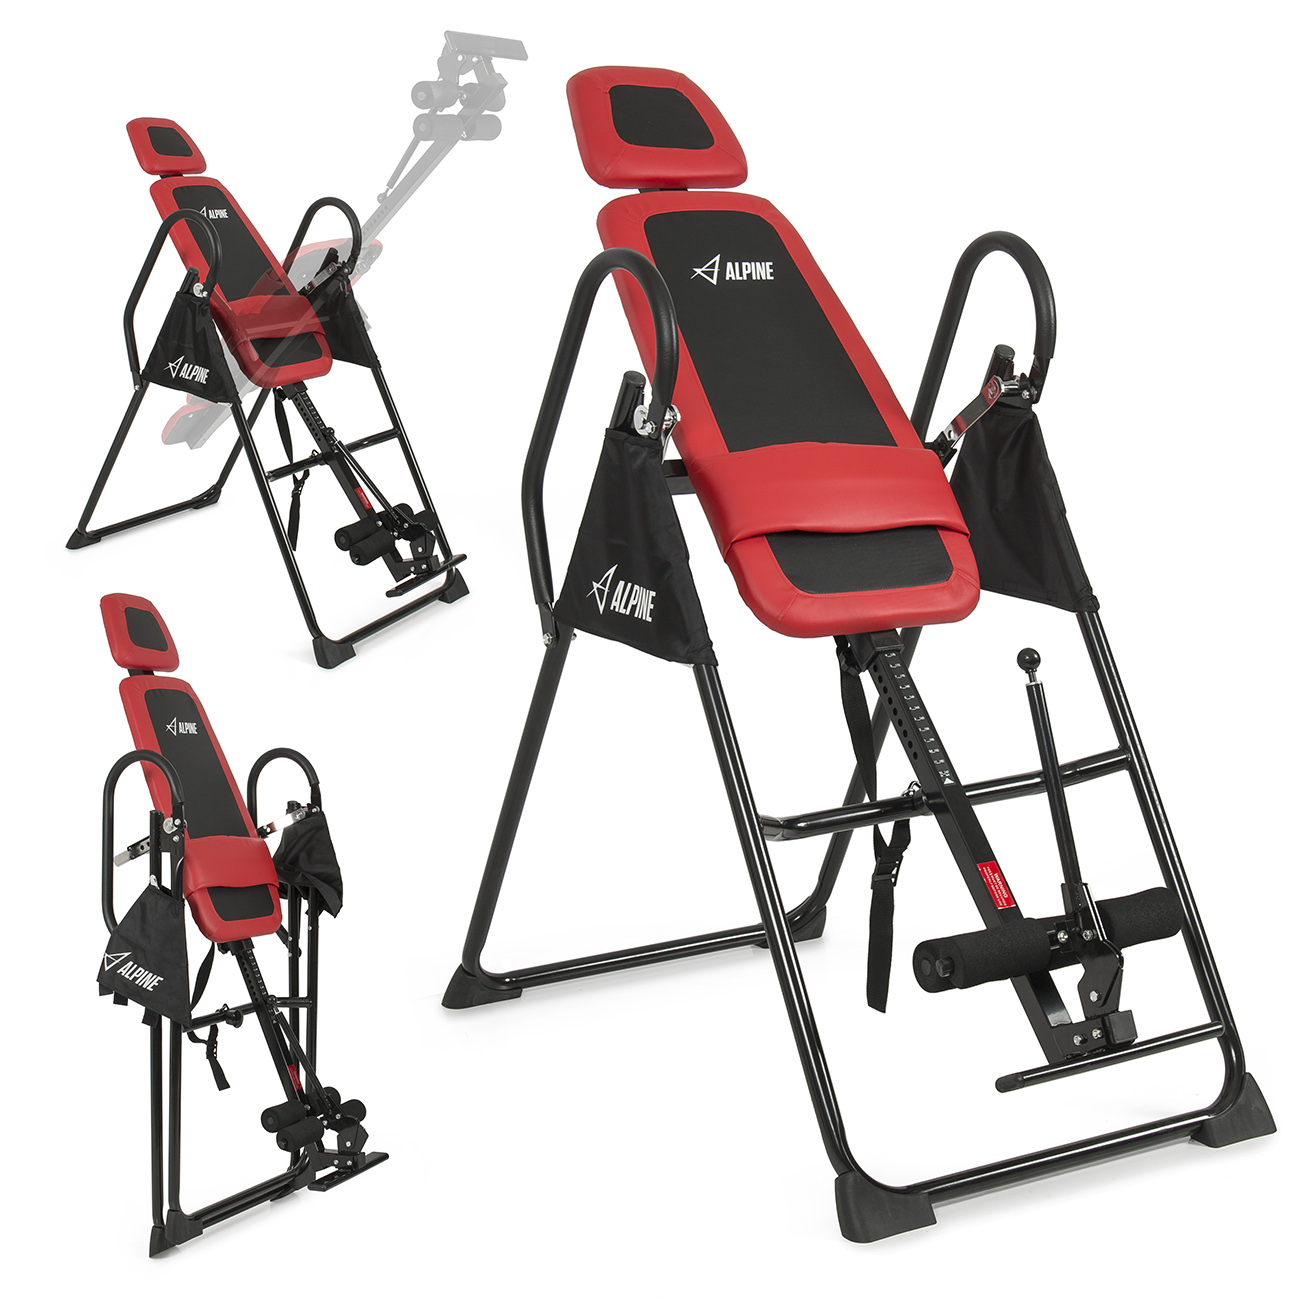 Akonza Fitness Pro Deluxe Inversion Table Chiropractic Exercise Back Reflexology Red